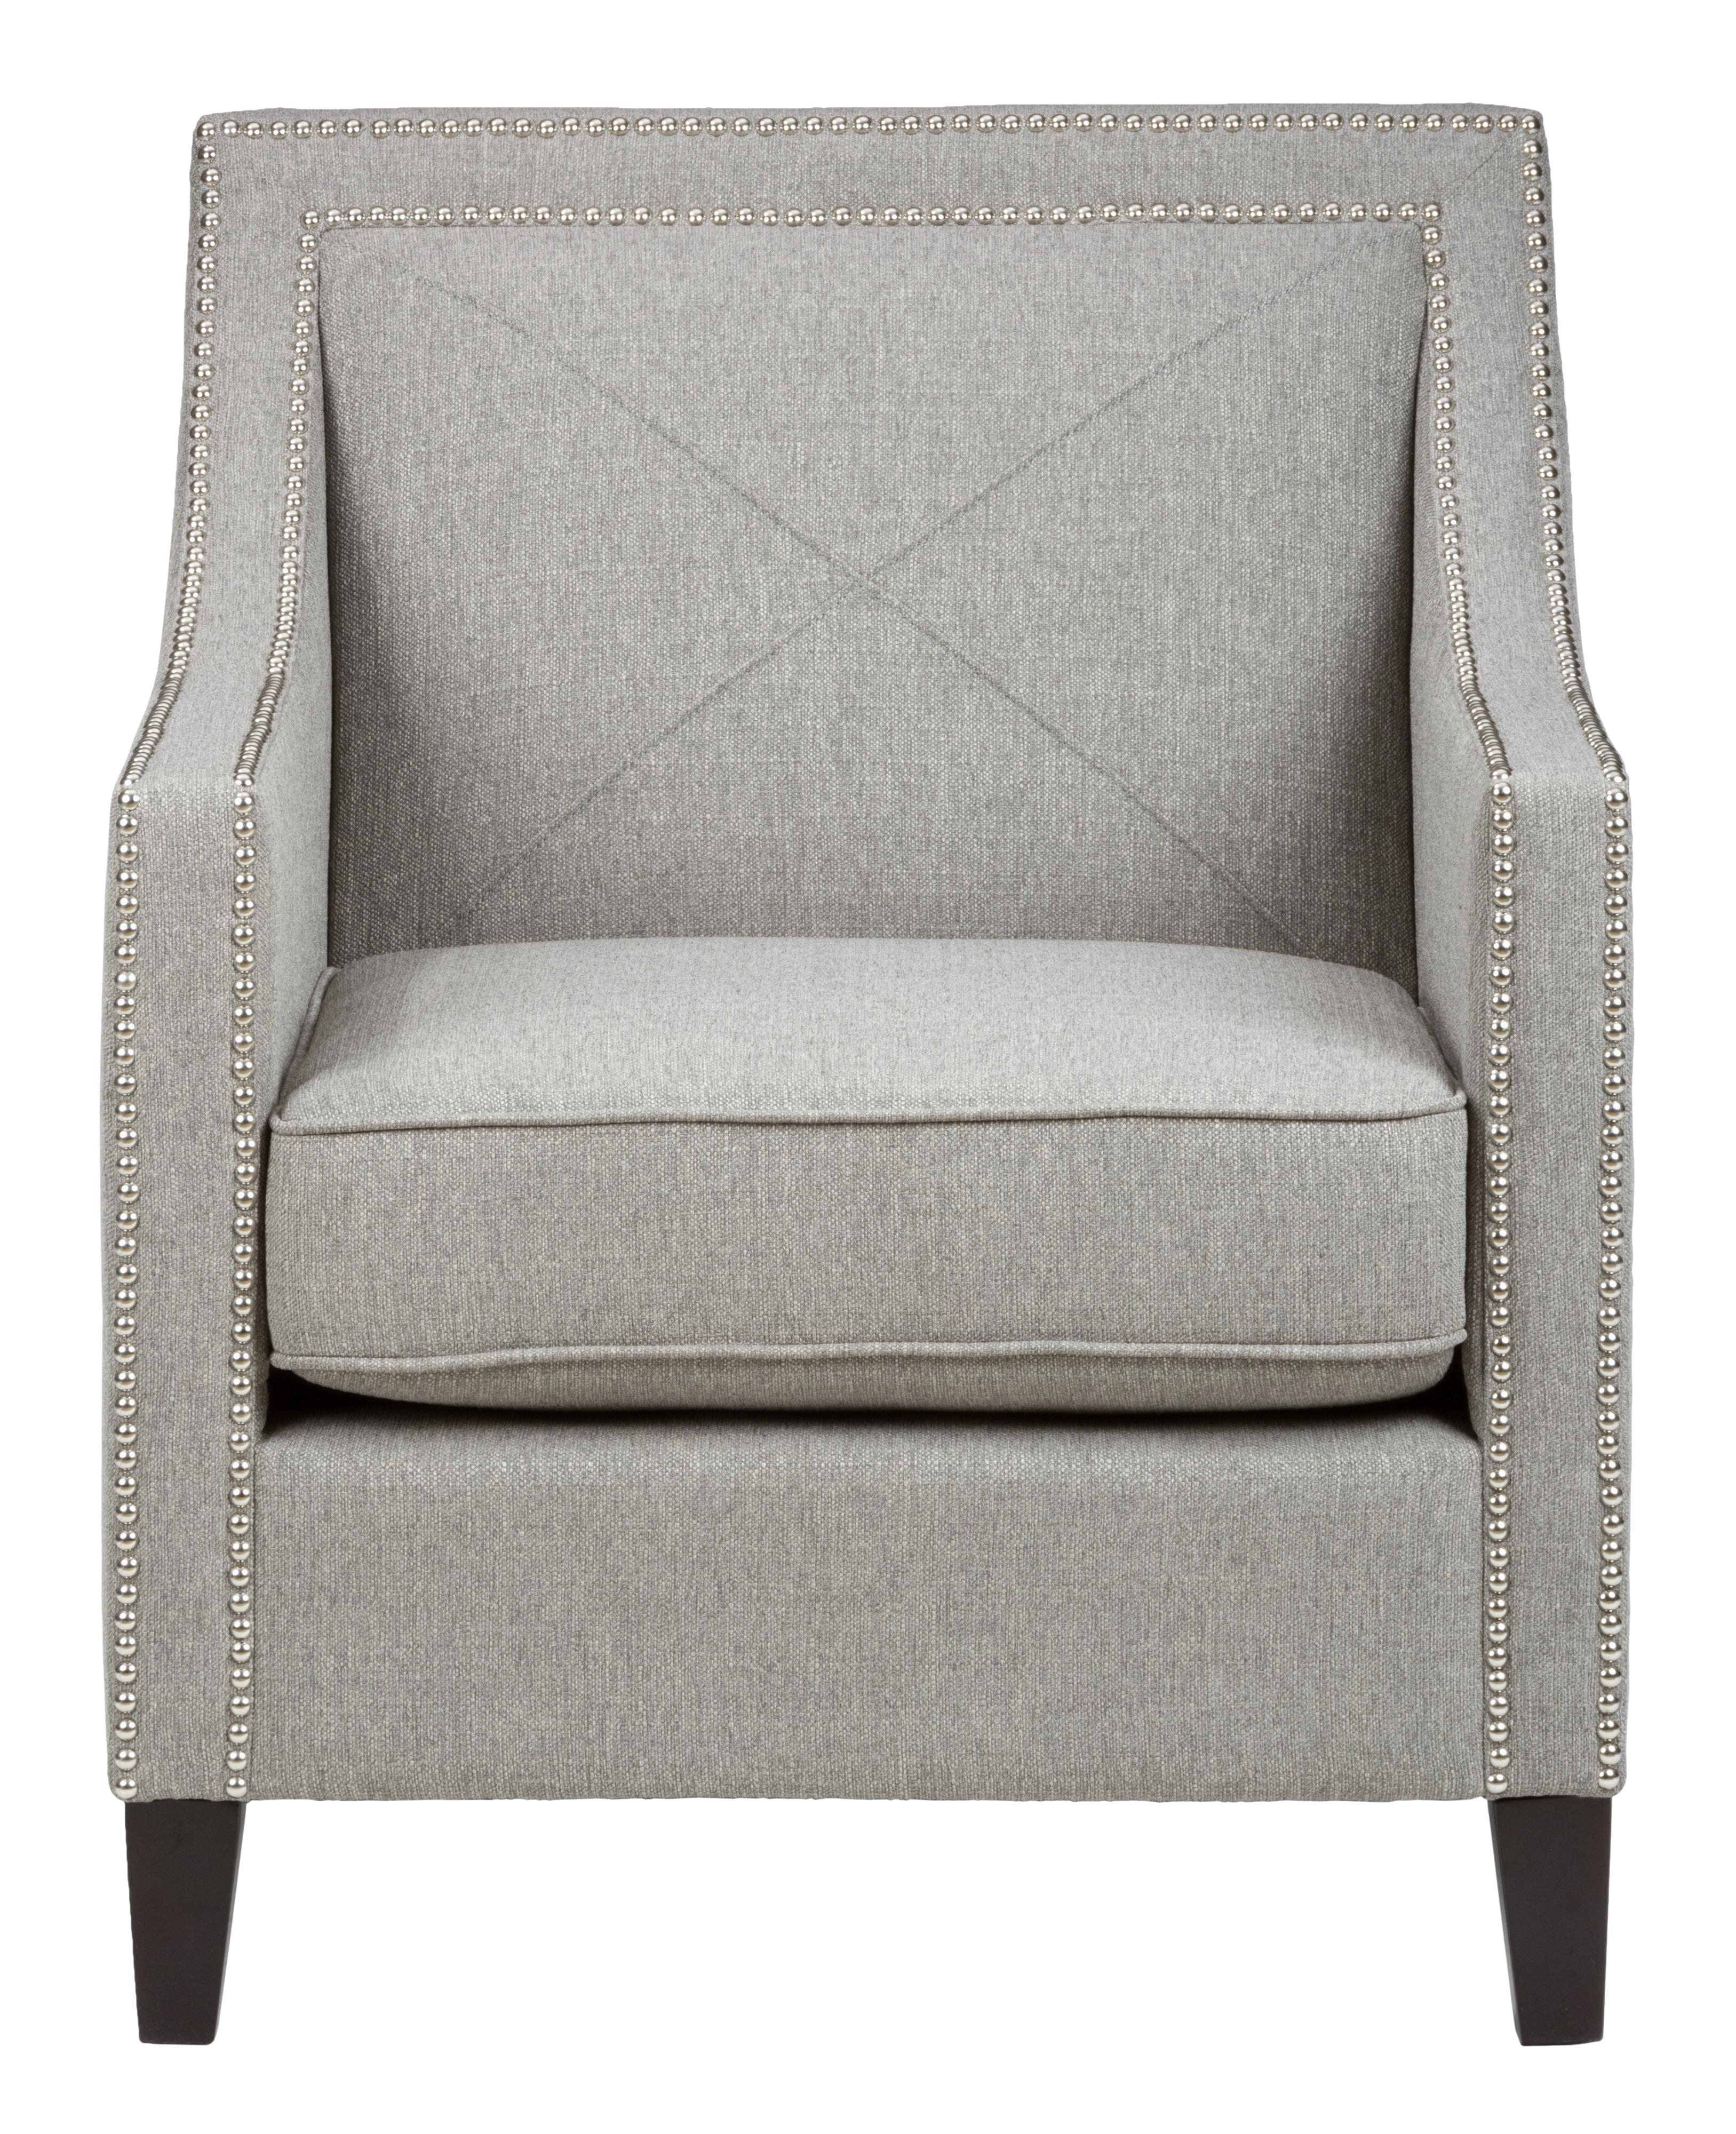 Jofran Upholstered Accent Chairs Ash Luca Club Chair - Item Number: LUCA-CH-ASH